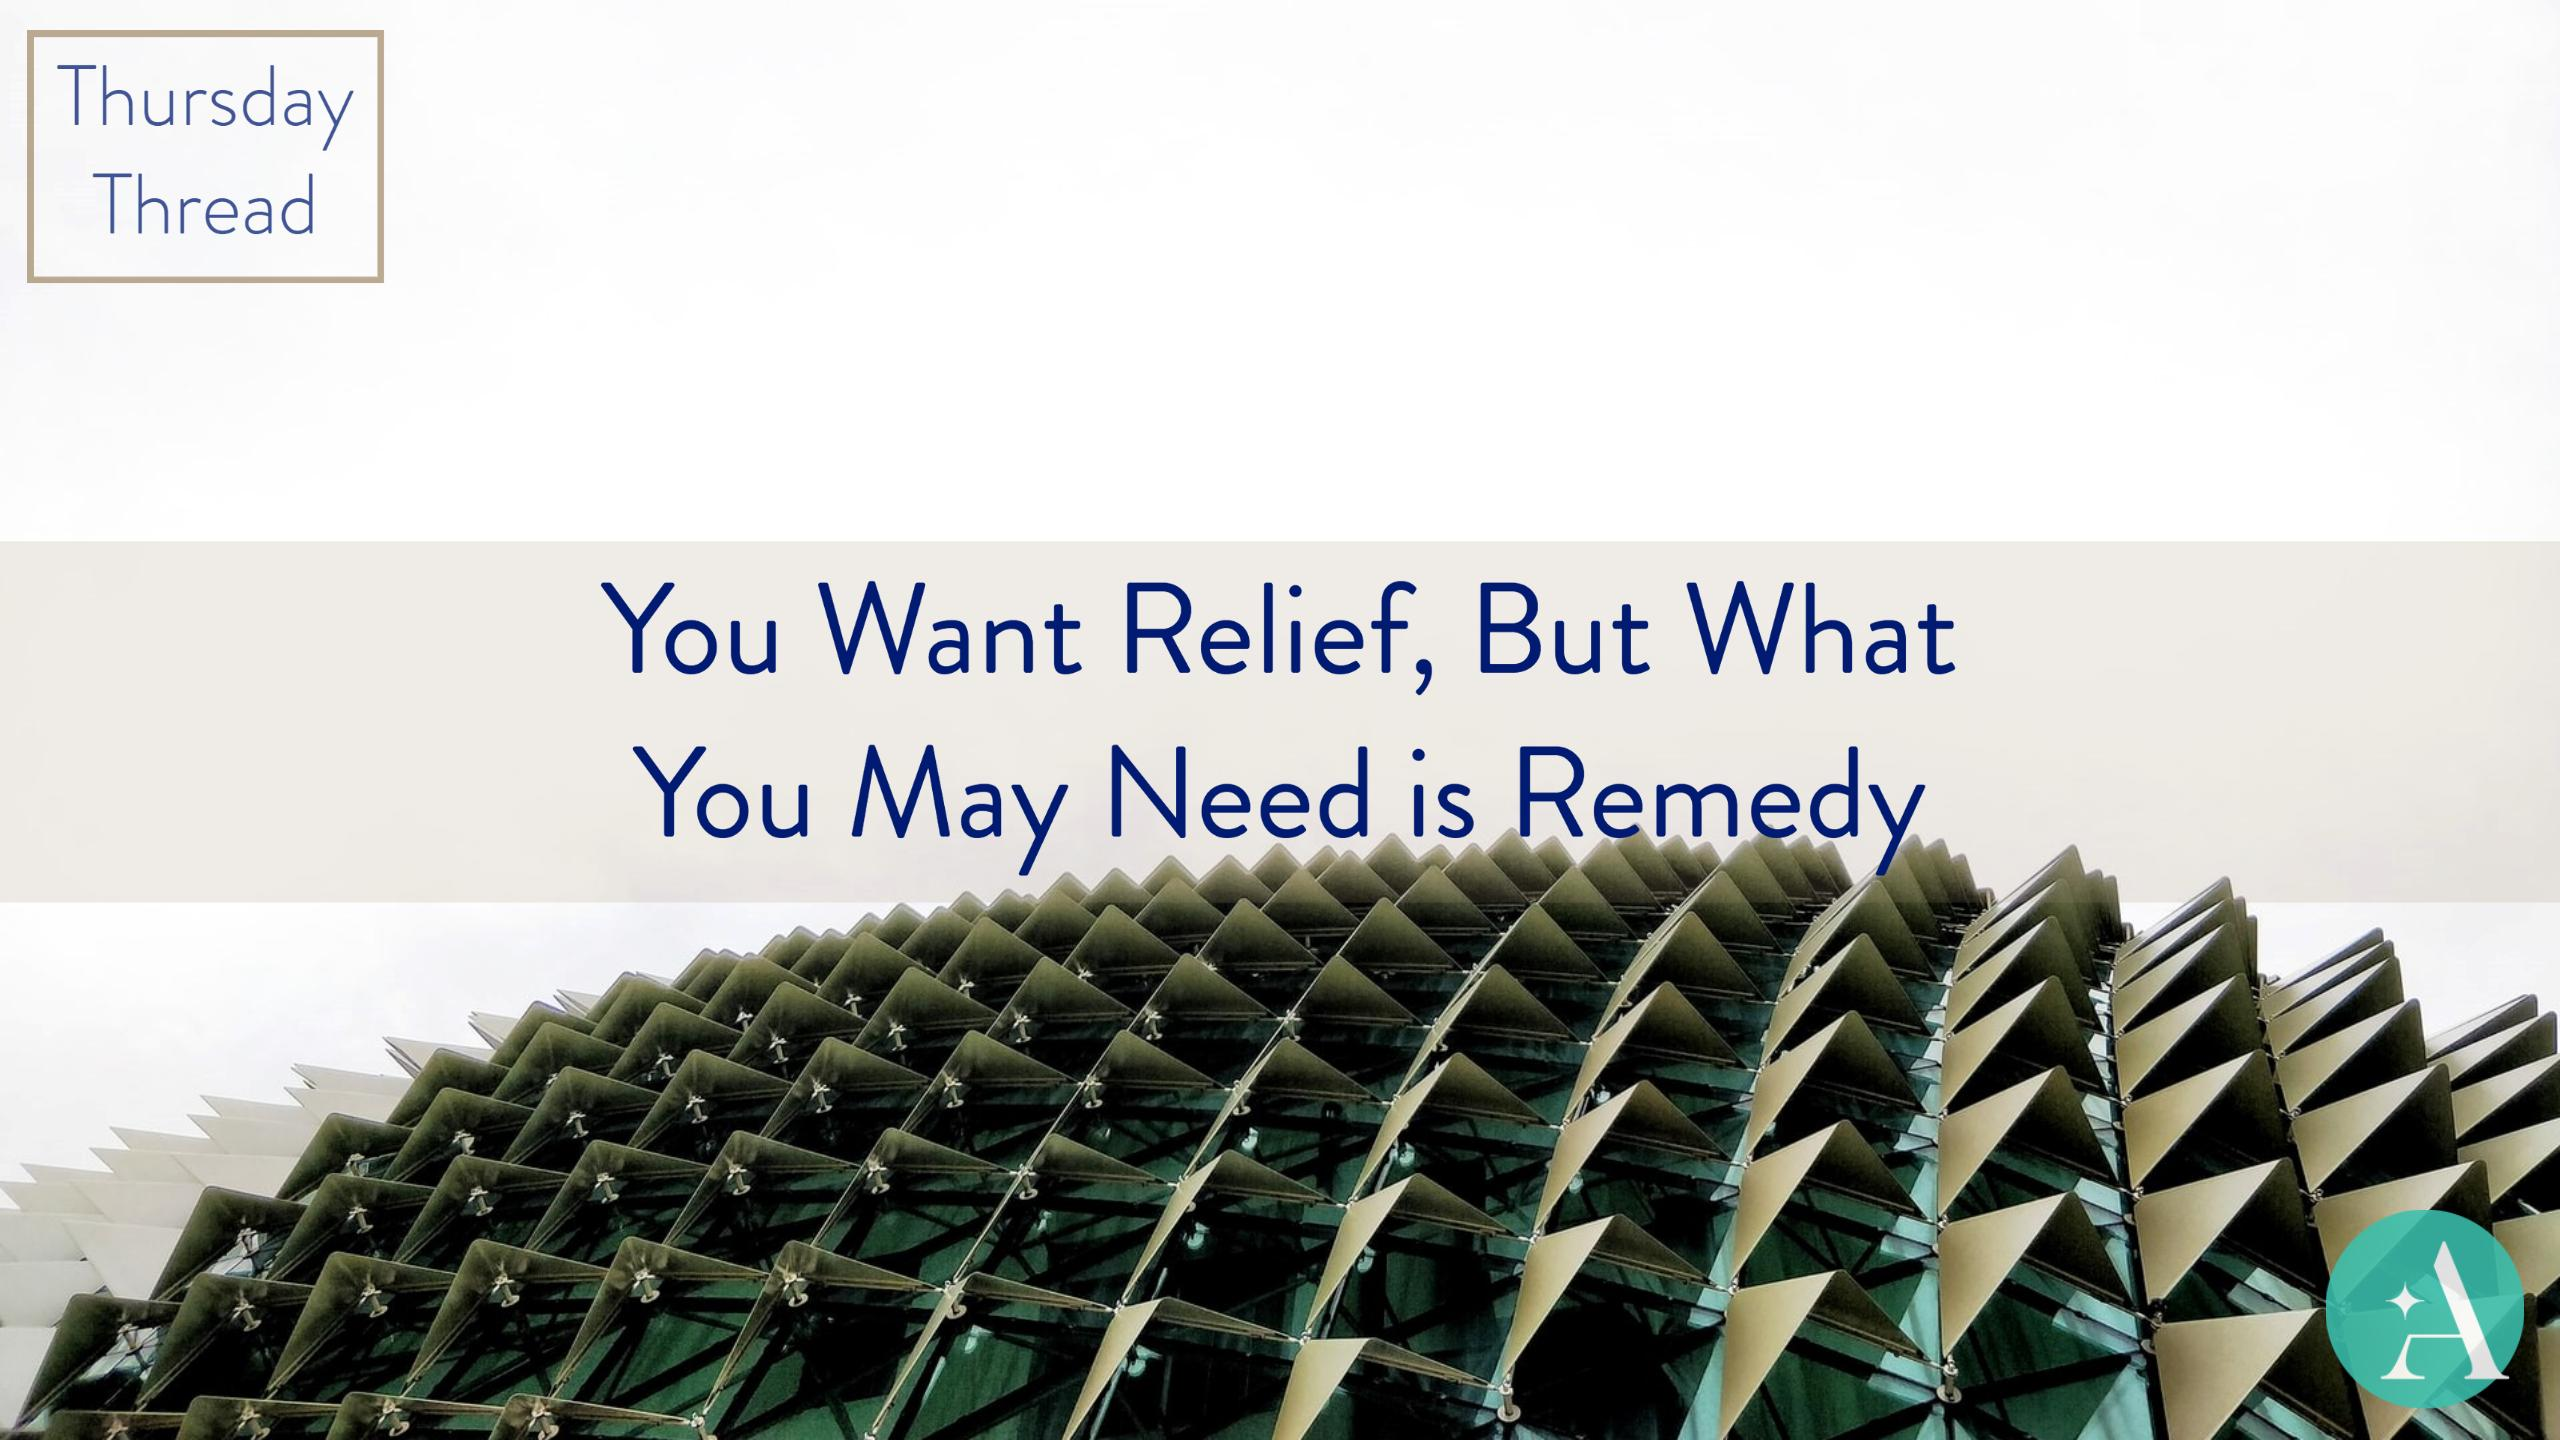 Thursday Thread: You Want Relief, But What You May Need Is Remedy Thumbnail